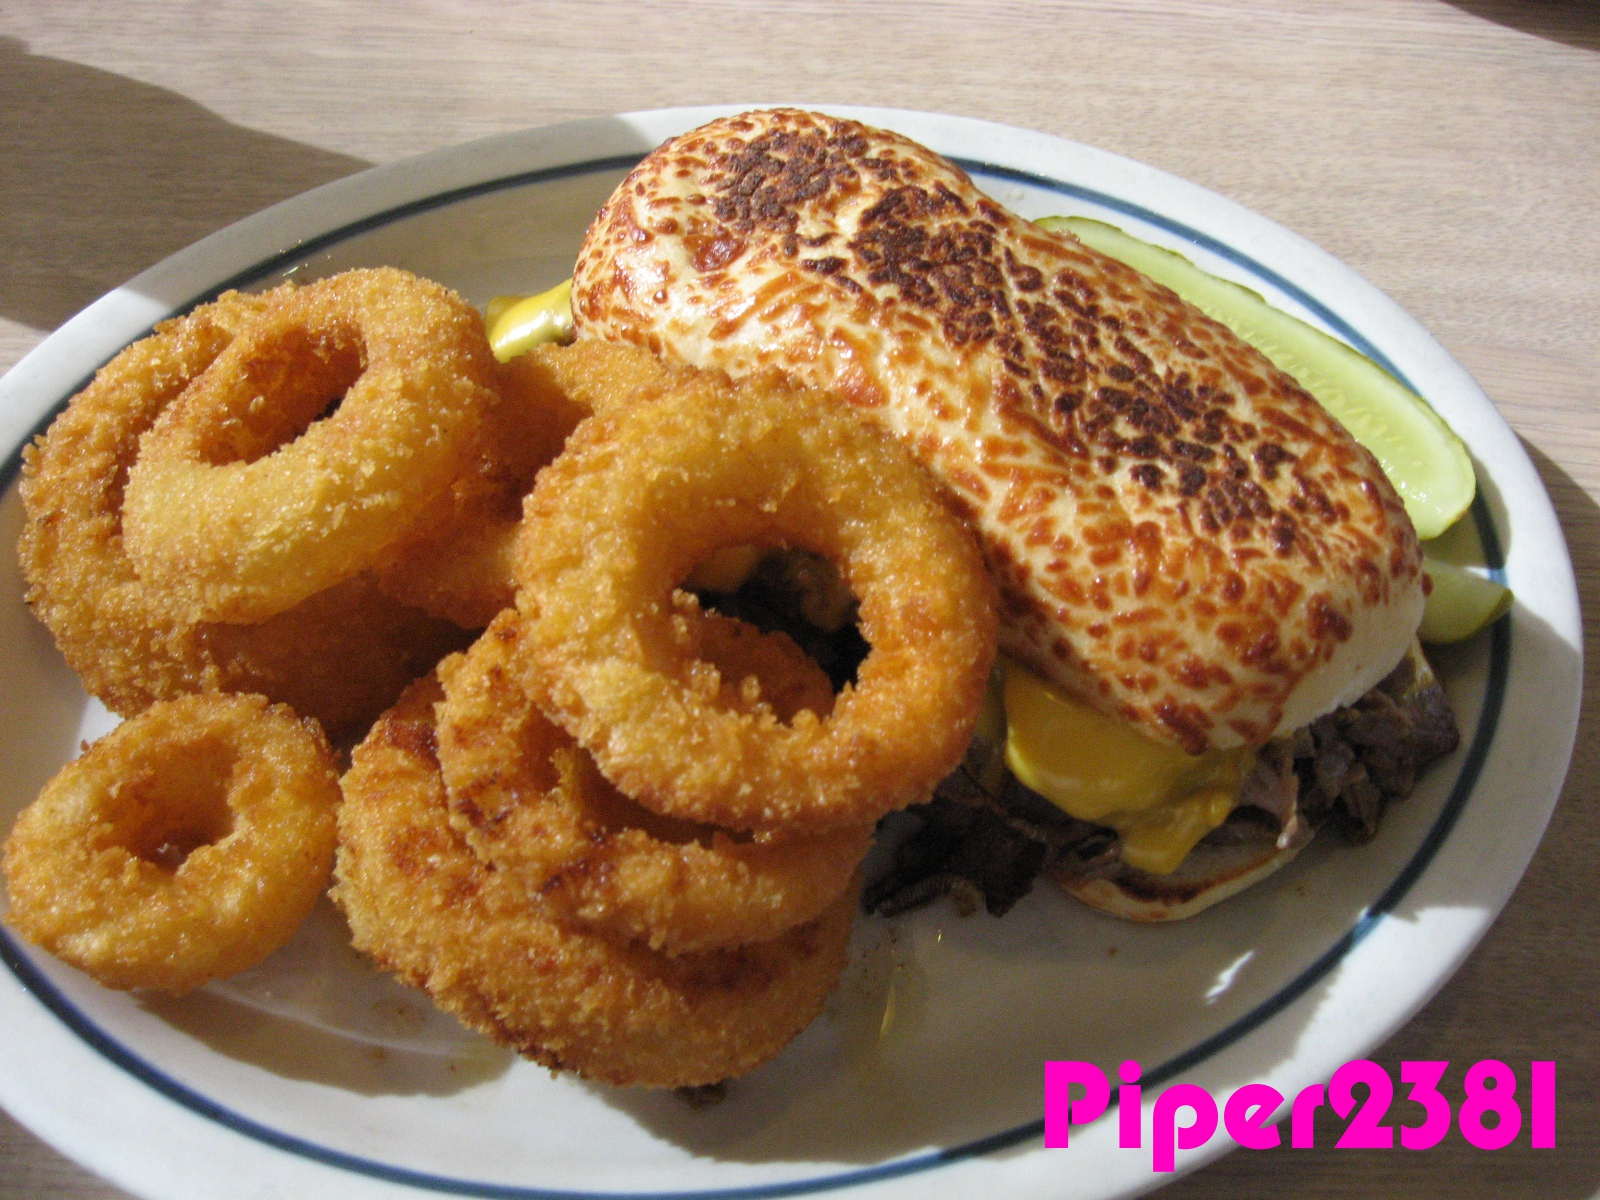 IHOP Near Me. Find IHOP Locations with the online map. Is there an IHOP near me, that is open now? Learn about the IHOP restaurant chain and see customer service phone numbers, corporate addresses and opening hours/5(14).